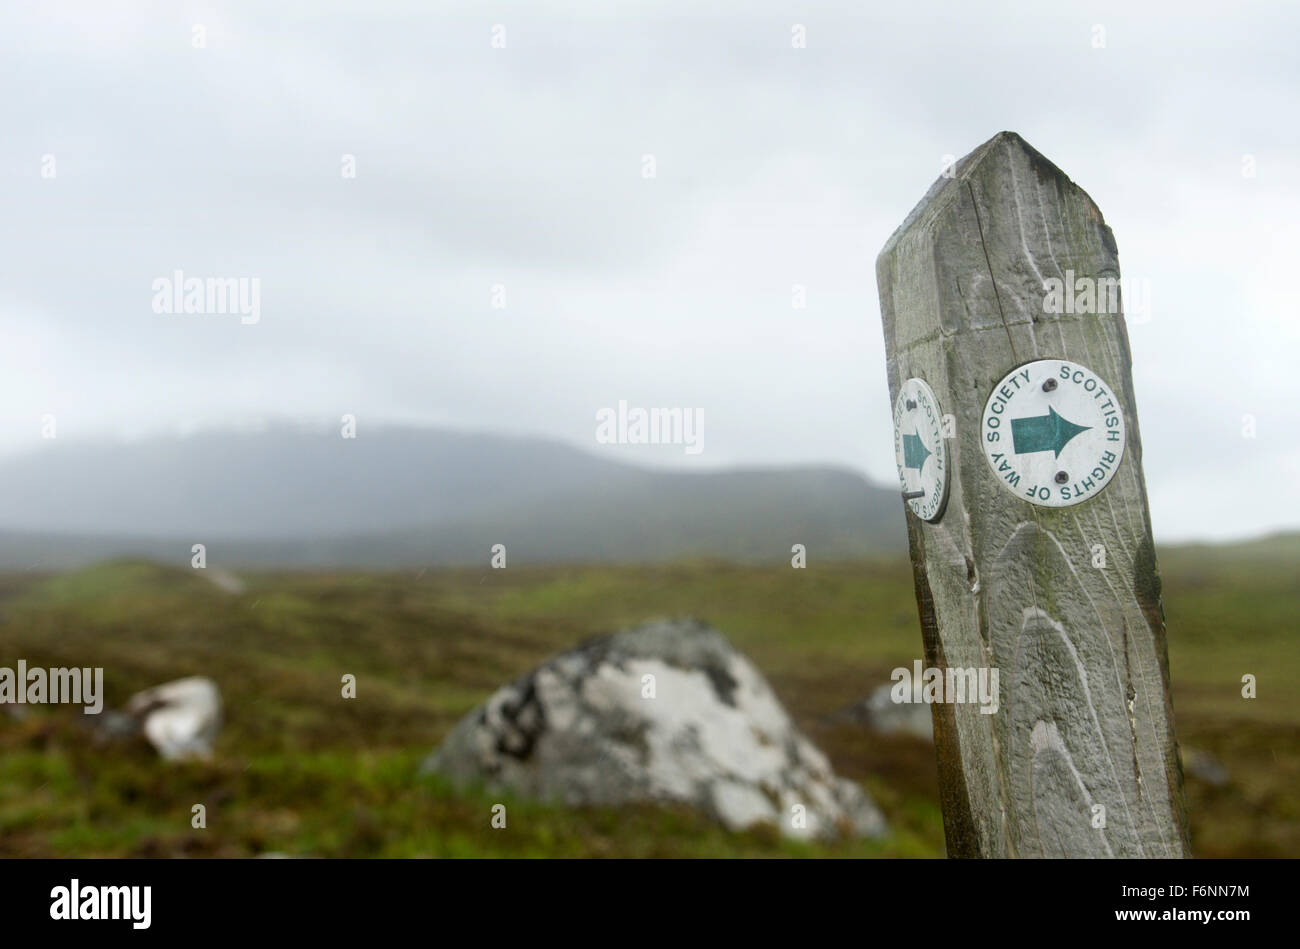 Scottish Rights of Way Society signage at Corrour Station, the UKs most remote railway station - Stock Image